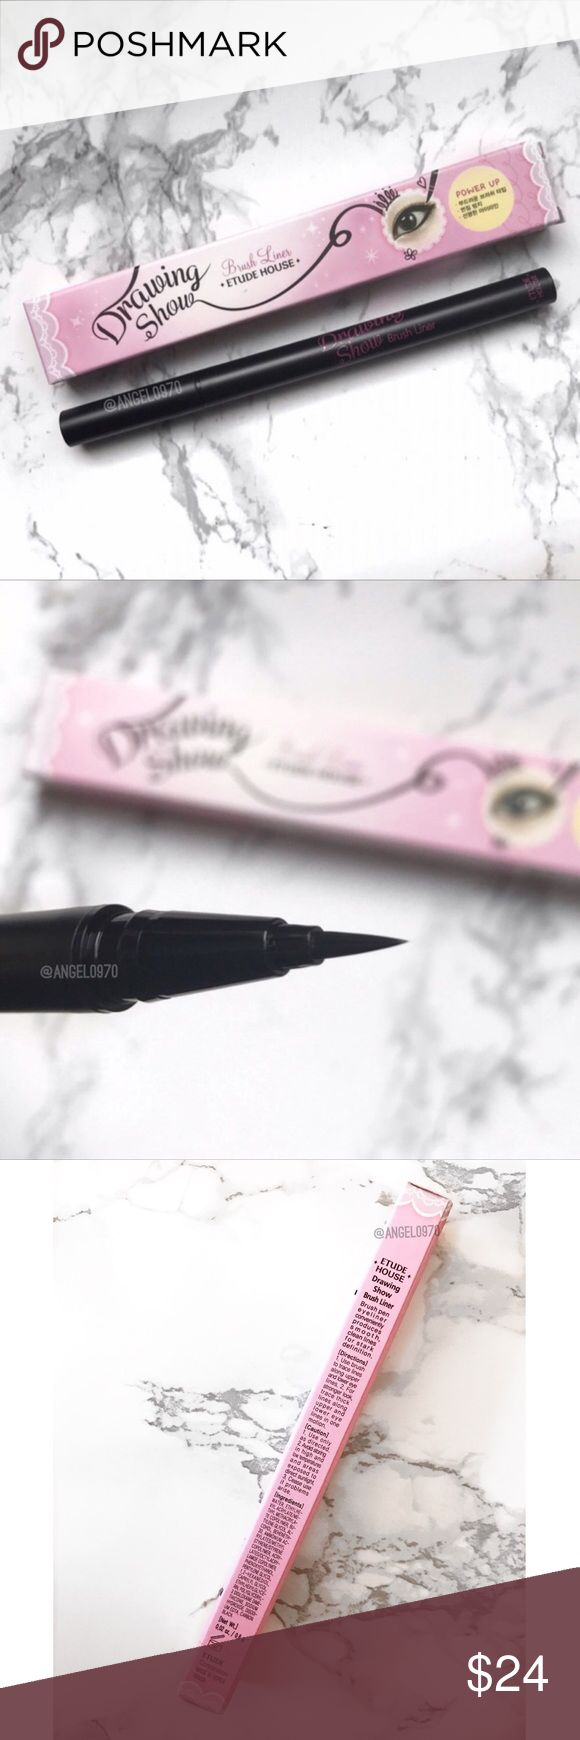 || Etude House Felt Tip Black Liquid Liner A brand new felt tip liquid liner from popular Korean Makeup brand Etude House.   Color: Black  No TradesPlease No Lowballing  I do not negotiate pricing in the comments. Please submit a reasonable offer by the offer button. Thank you  Etude House Makeup Eyeliner